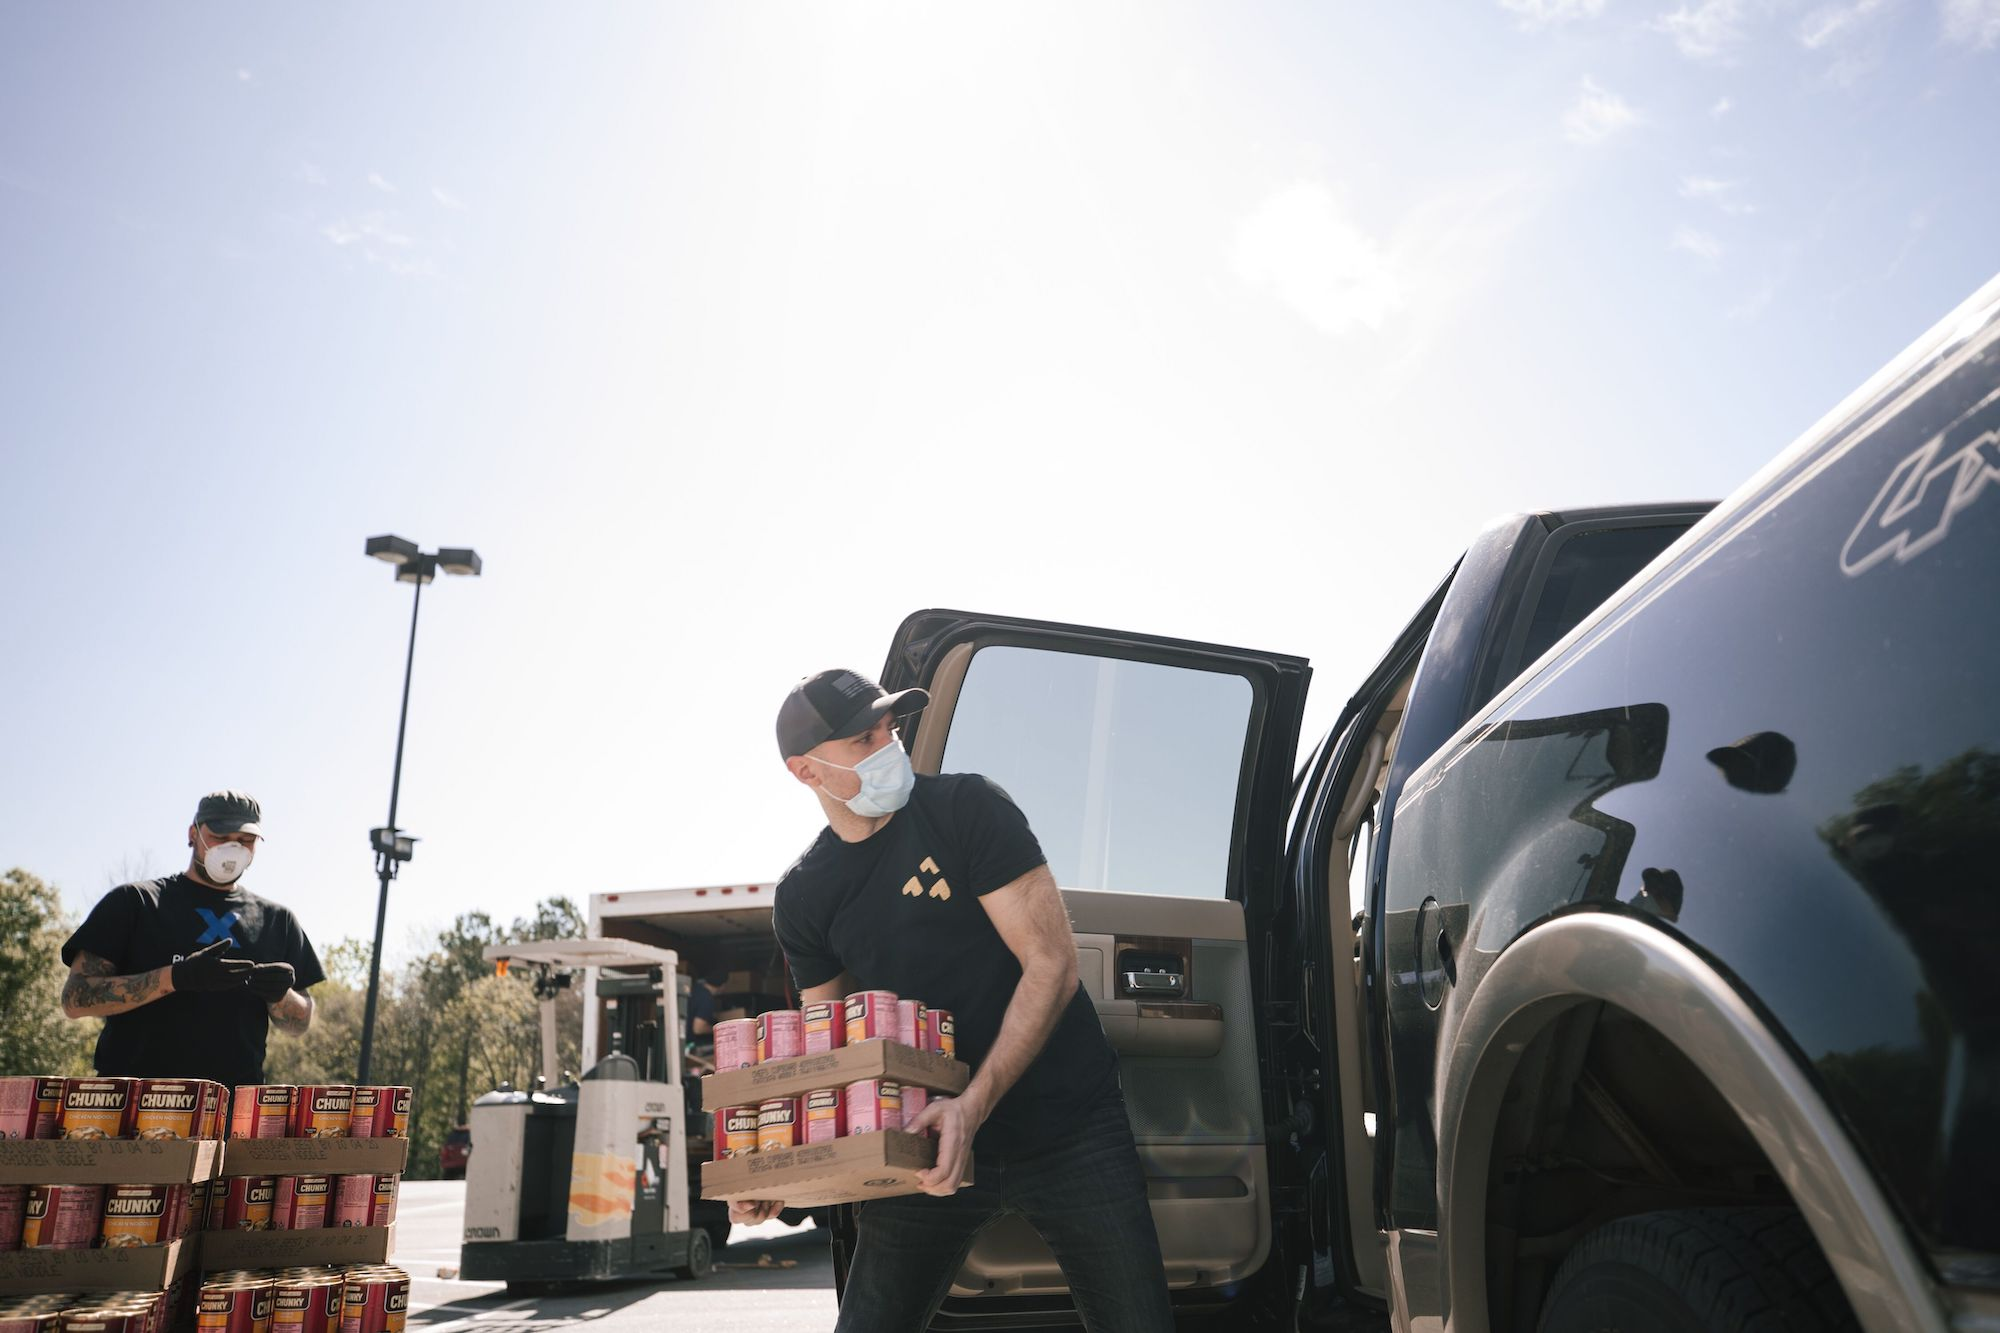 A man unloads canned goods from a truck while wearing a mask.